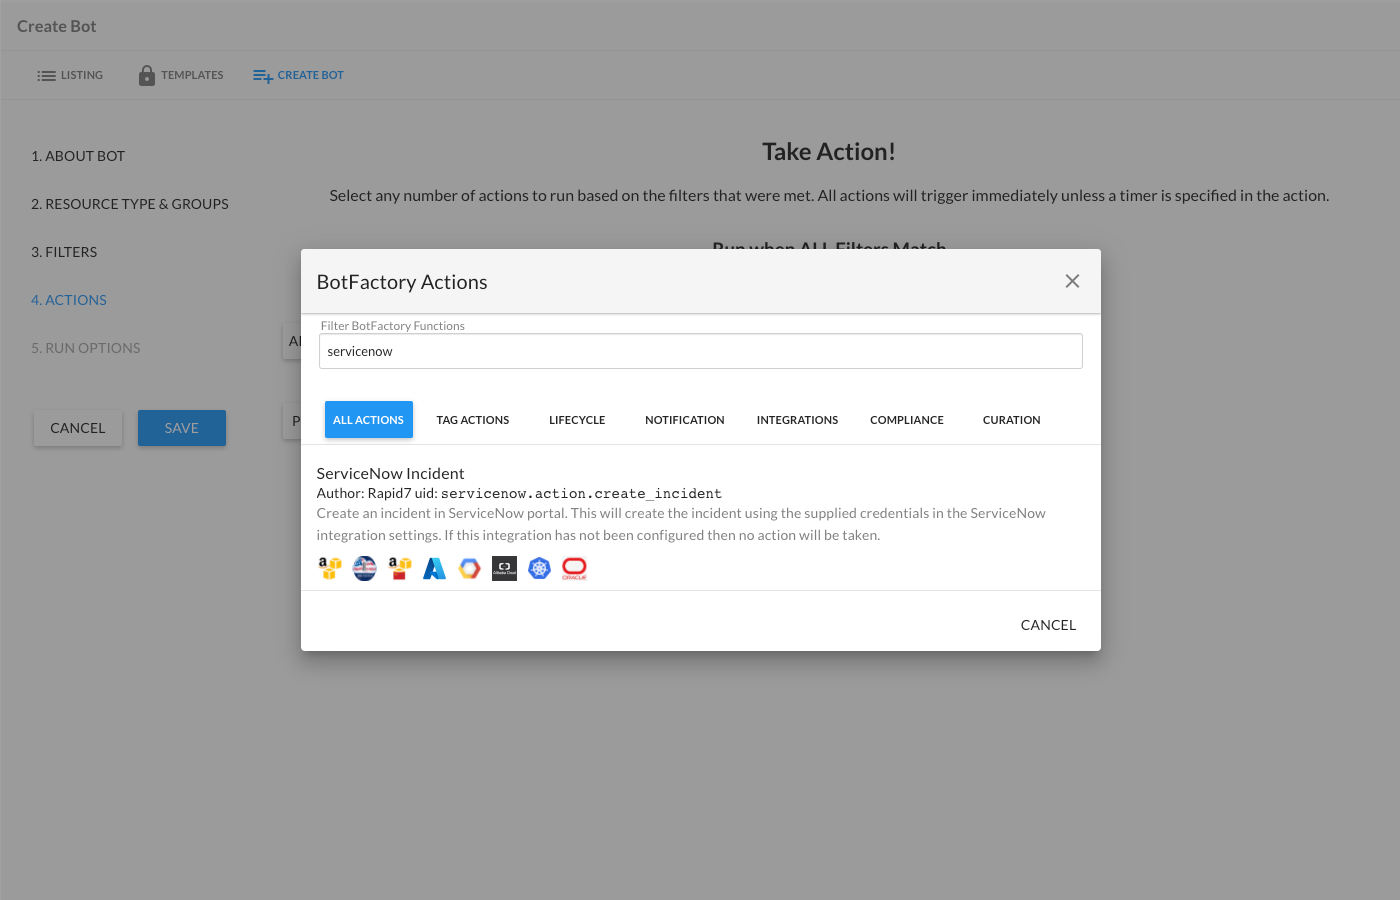 Configuring the ServiceNow Incident Bot